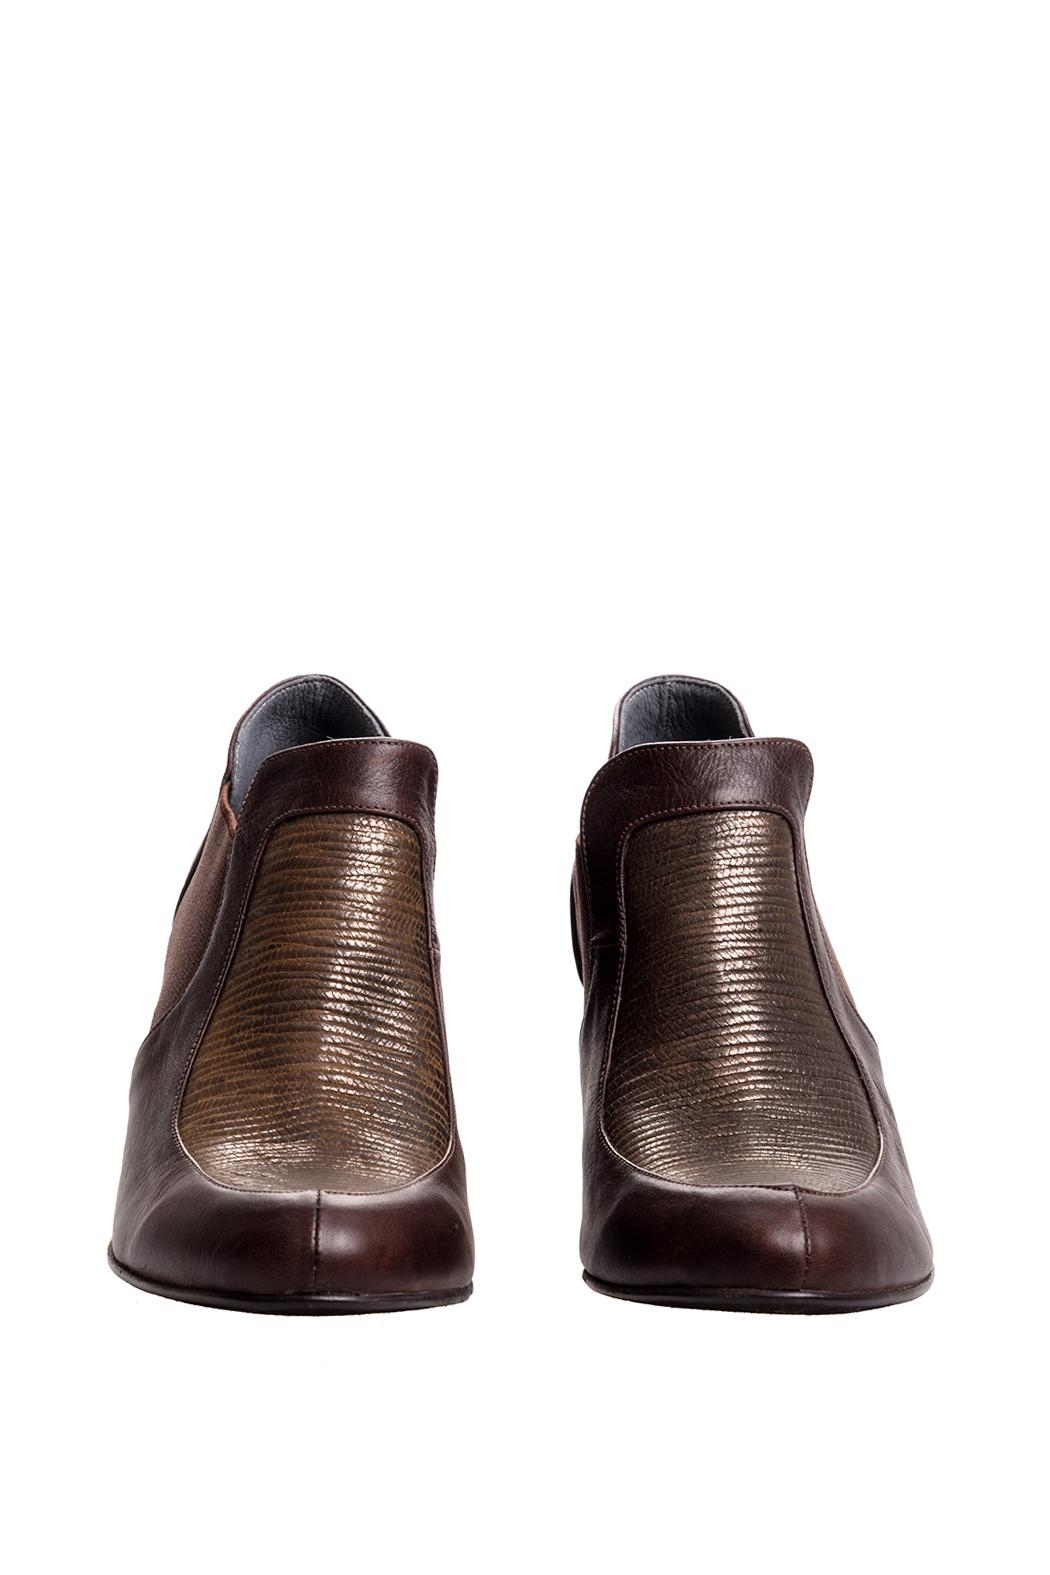 Bottega Bash Brown Leather Booties - Front Full Image